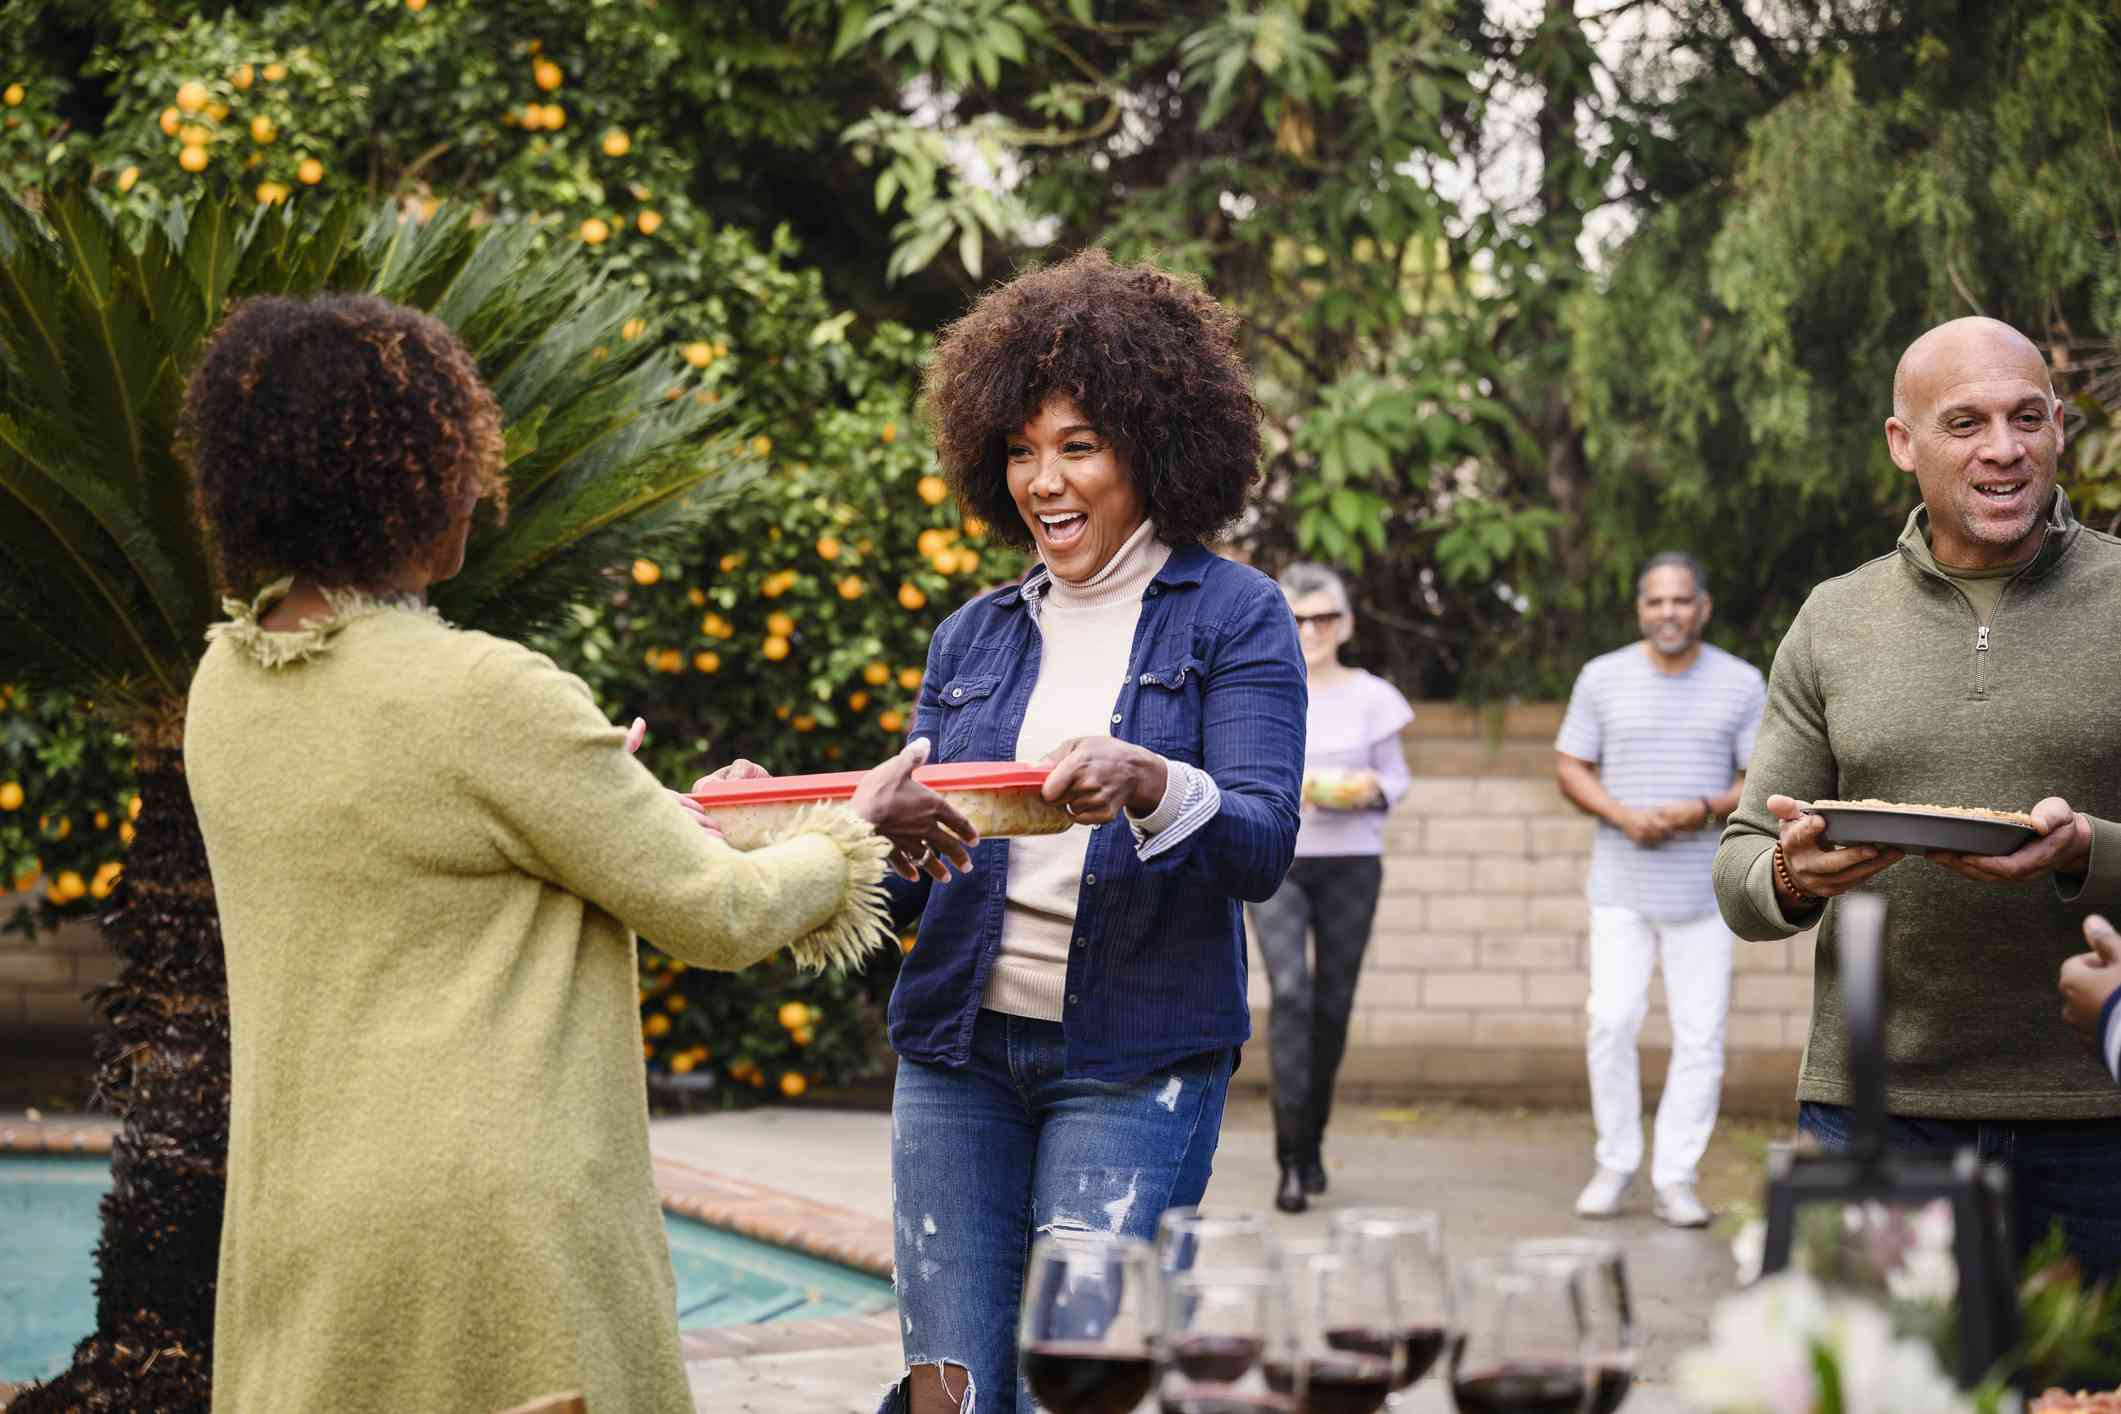 Smiling friends walking into backyard party with trays of food